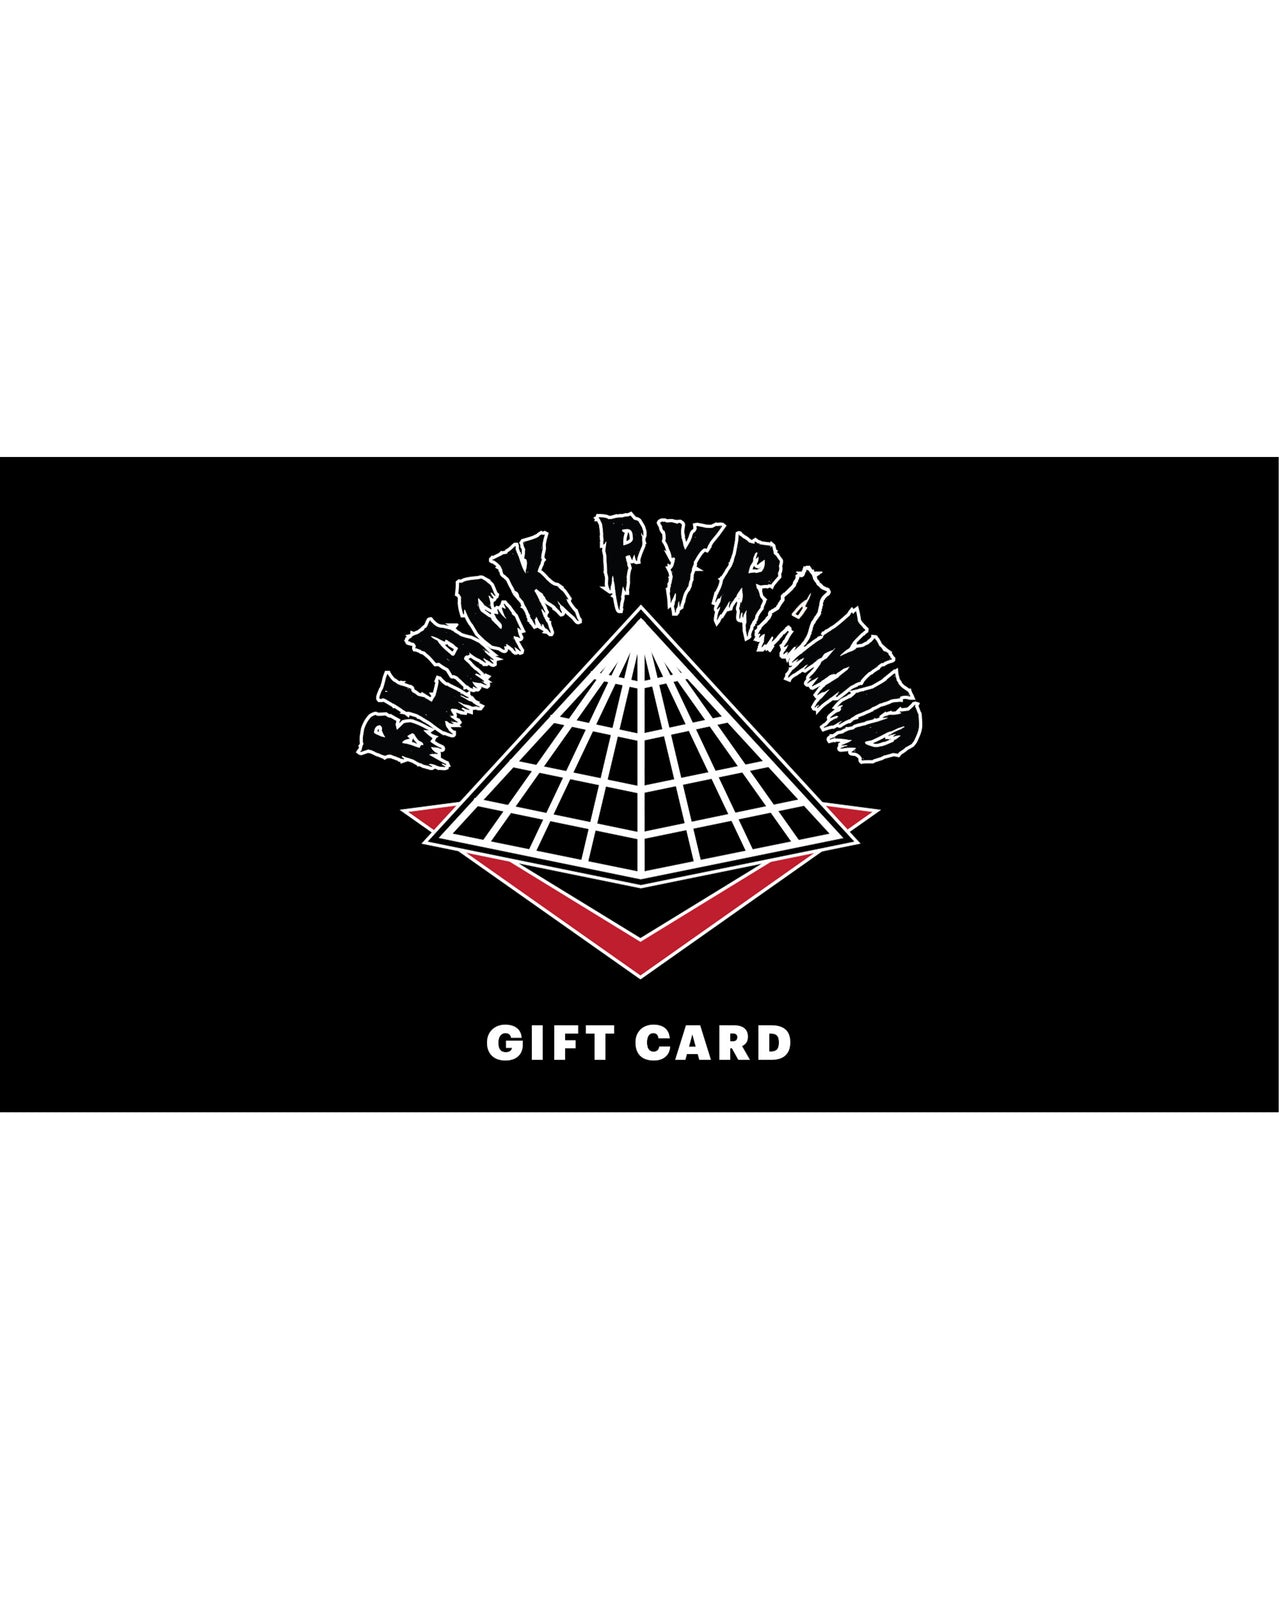 Gift Card - Color: Black